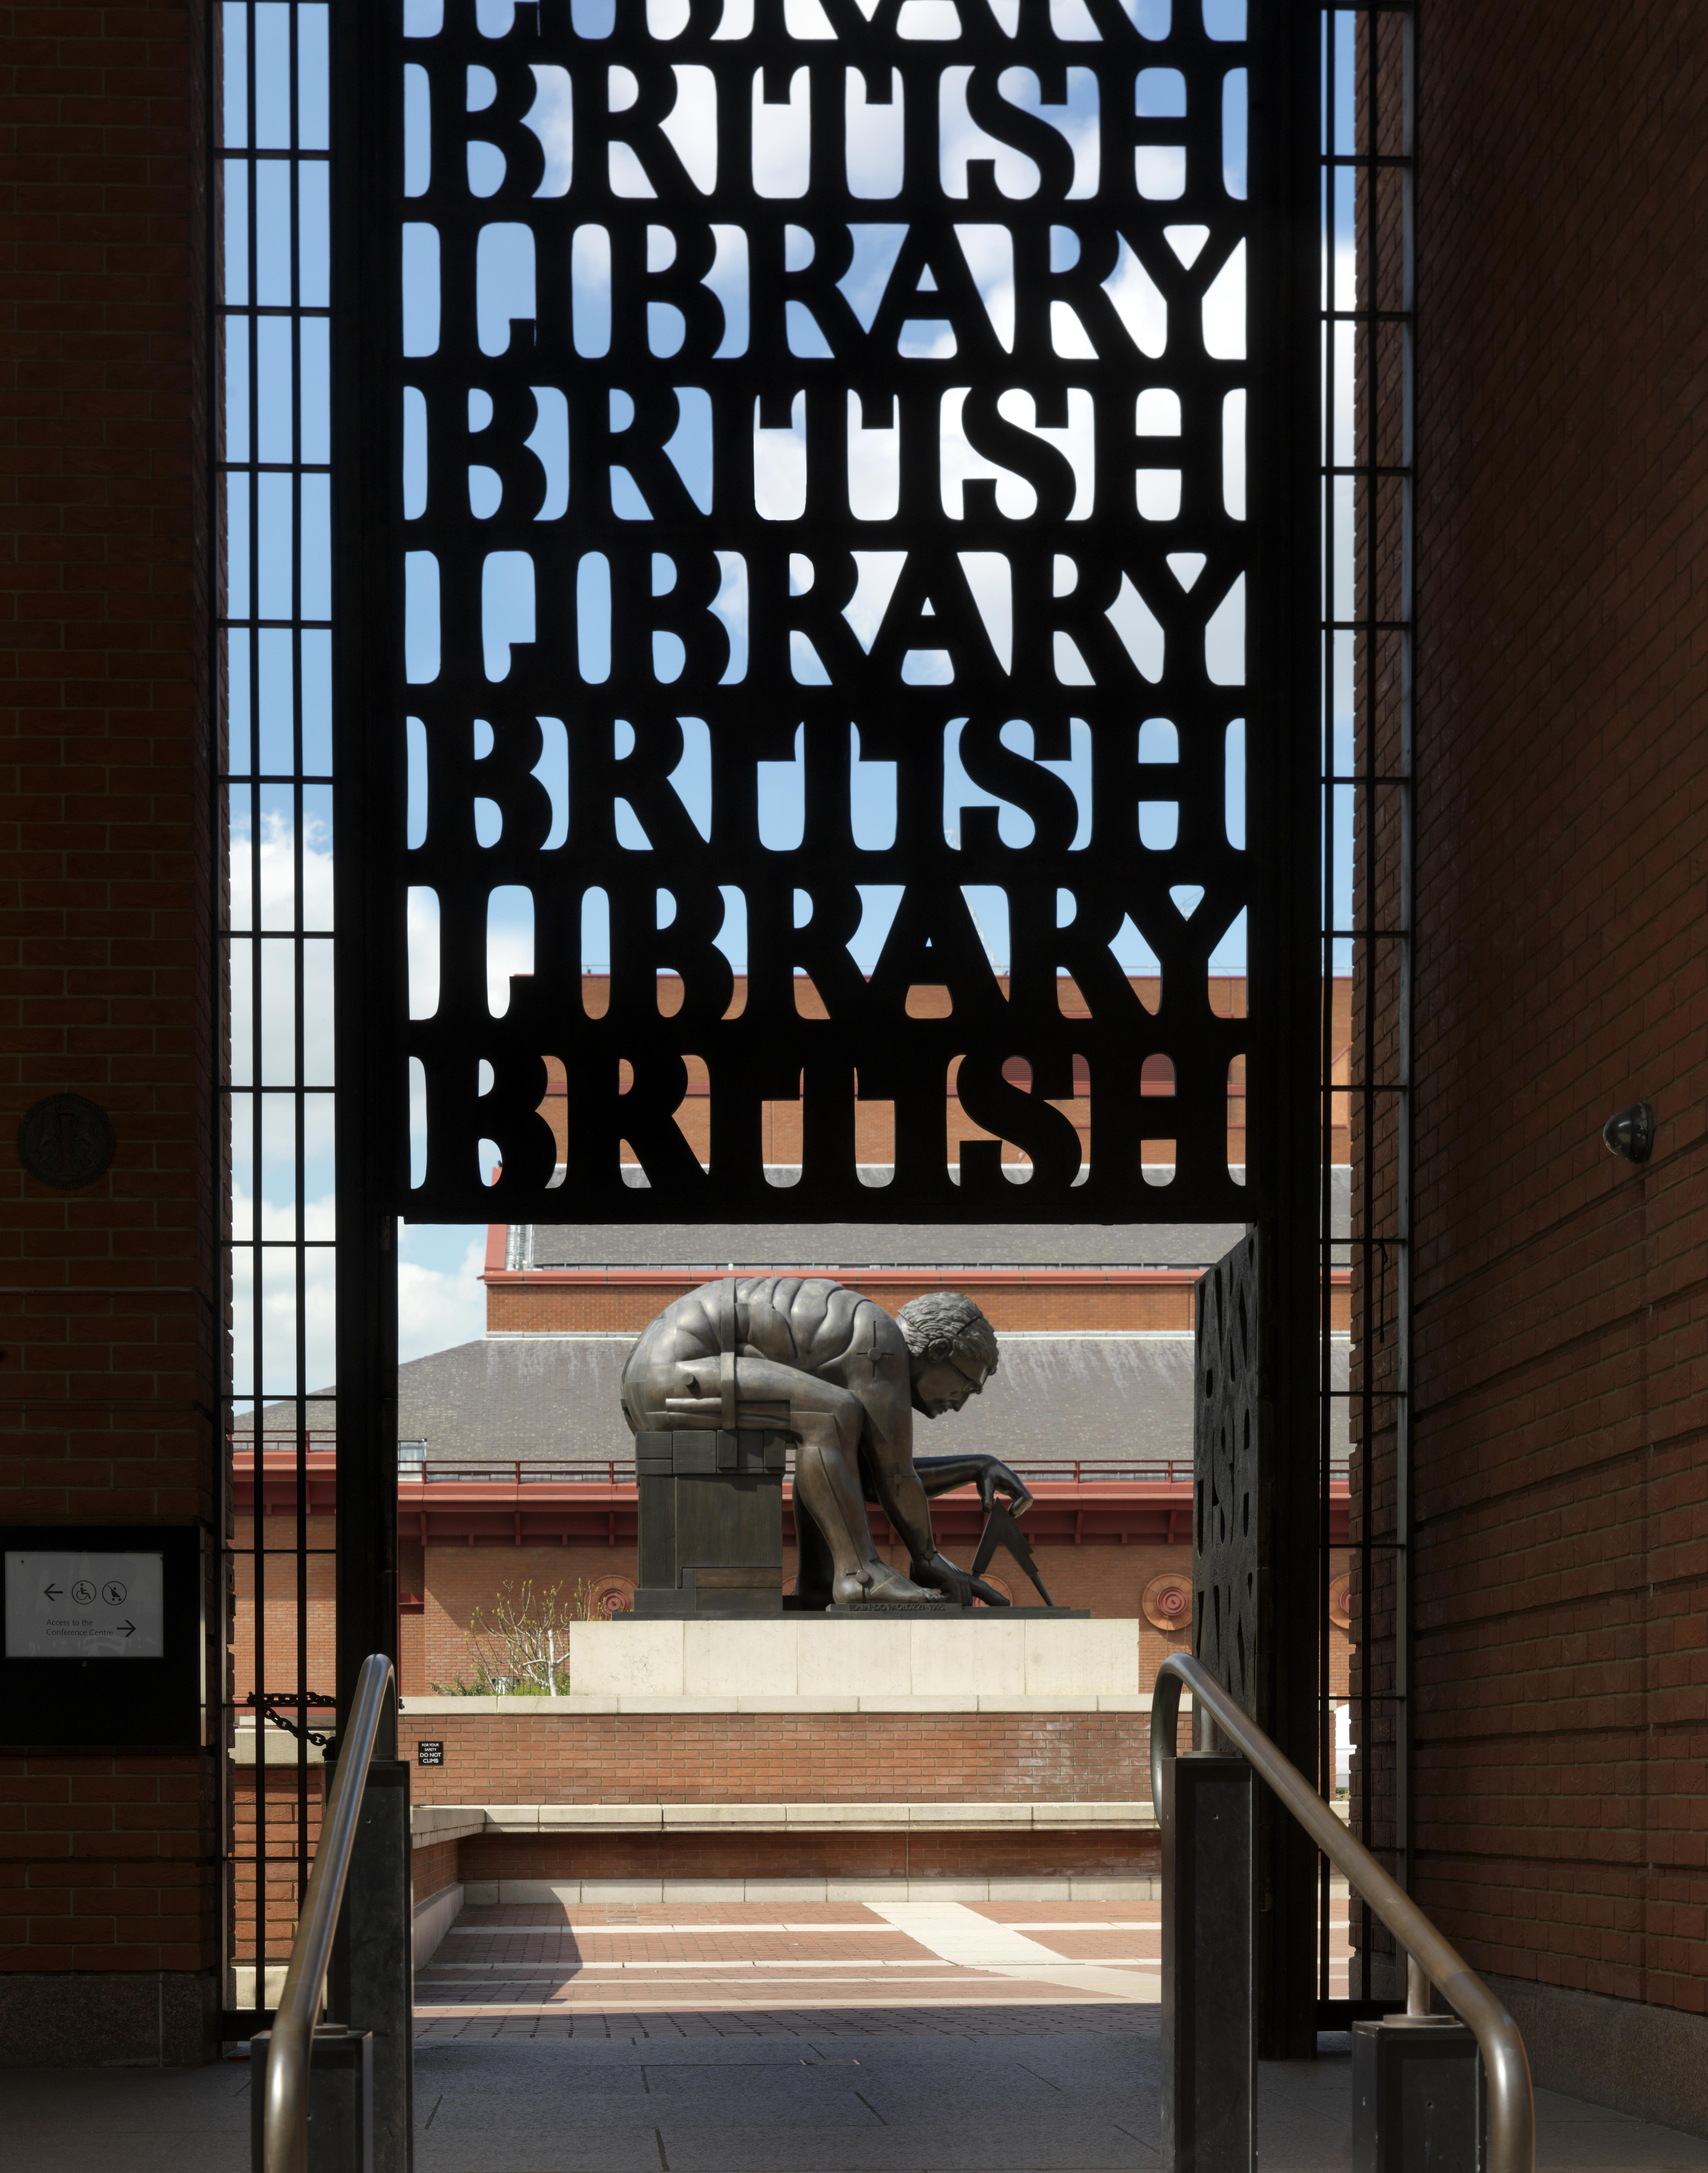 British Library at St Pancras